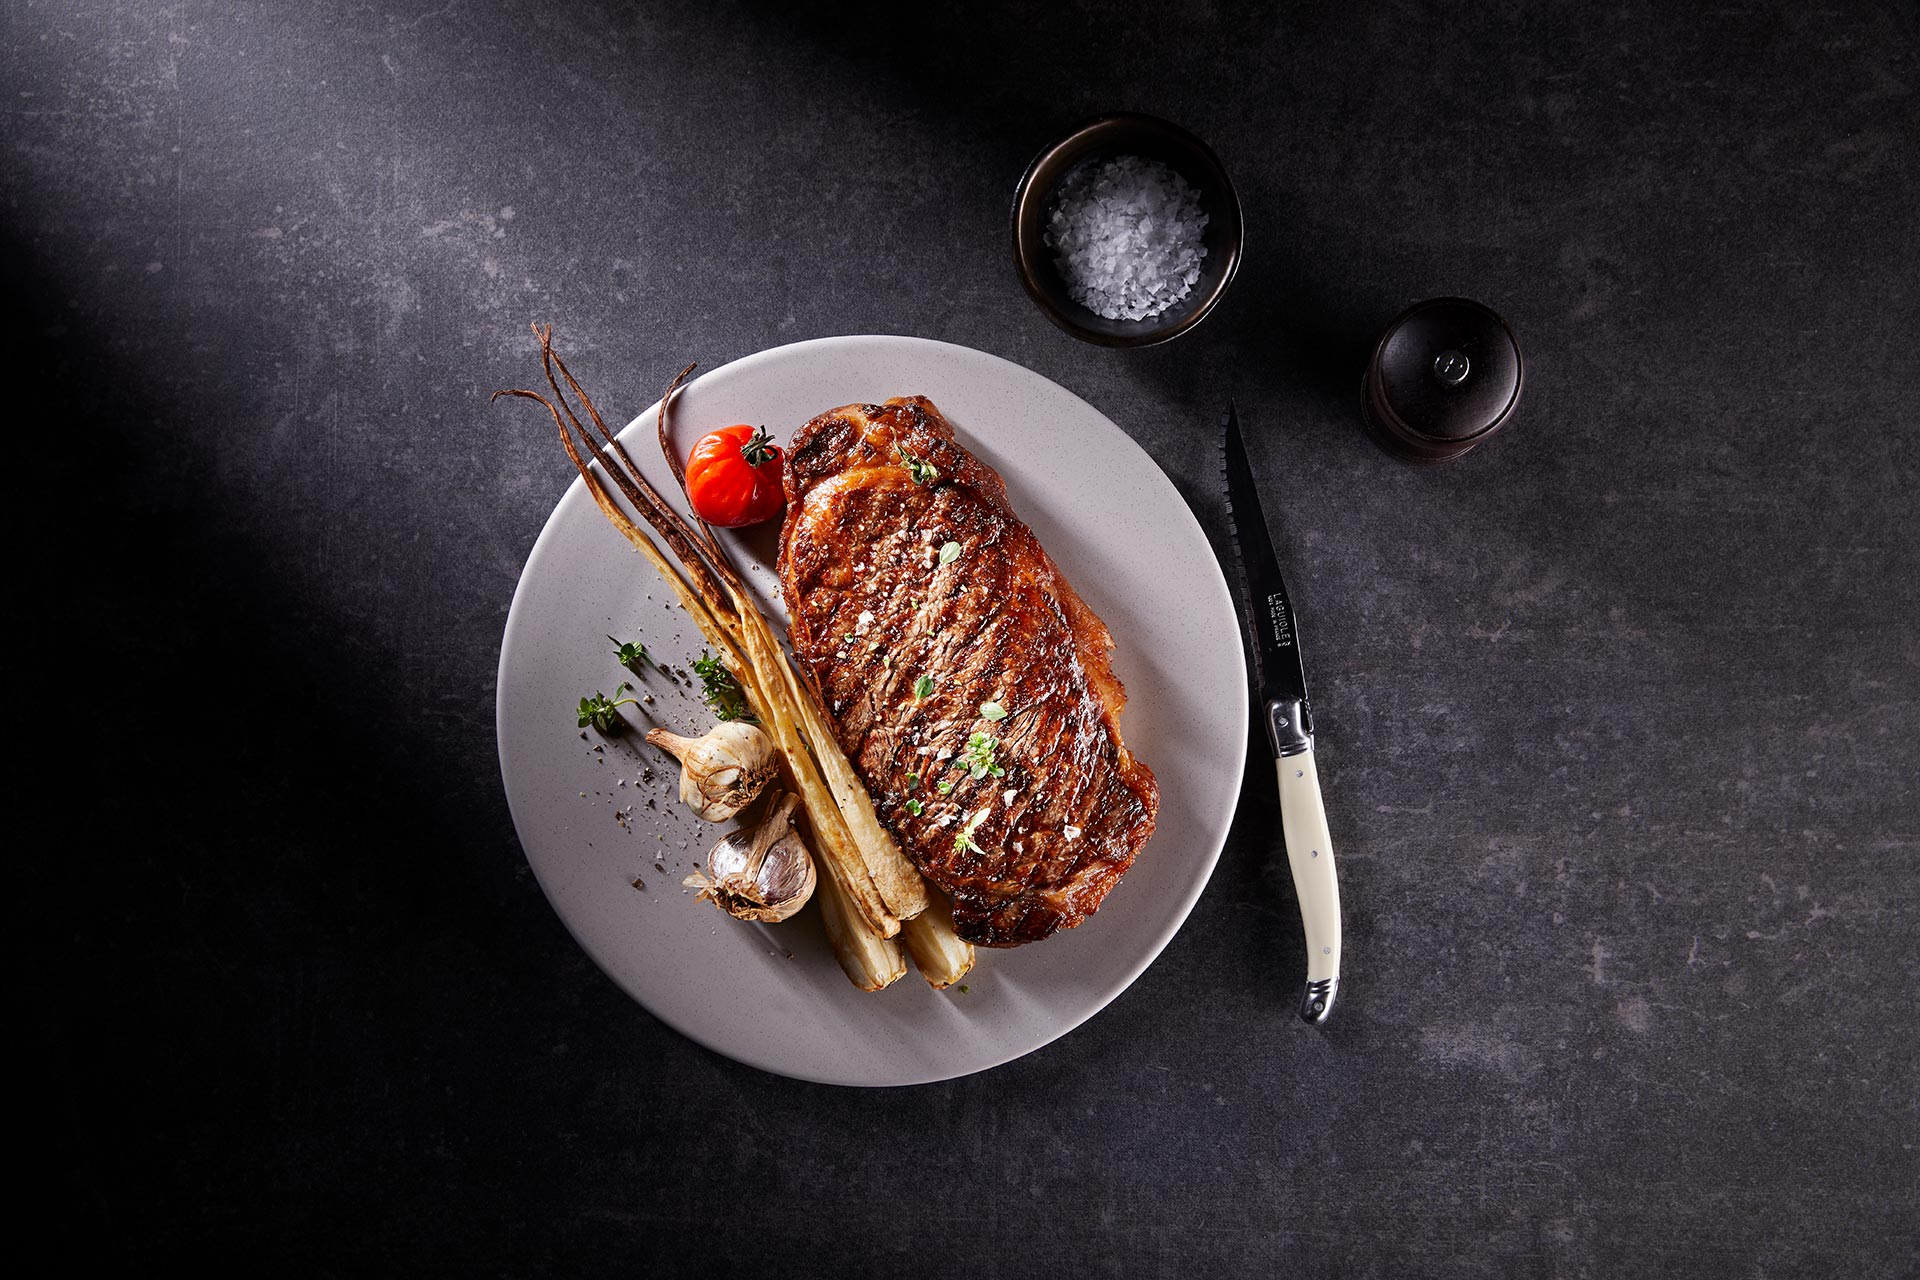 Taurindi Beef Porterhouse Steak